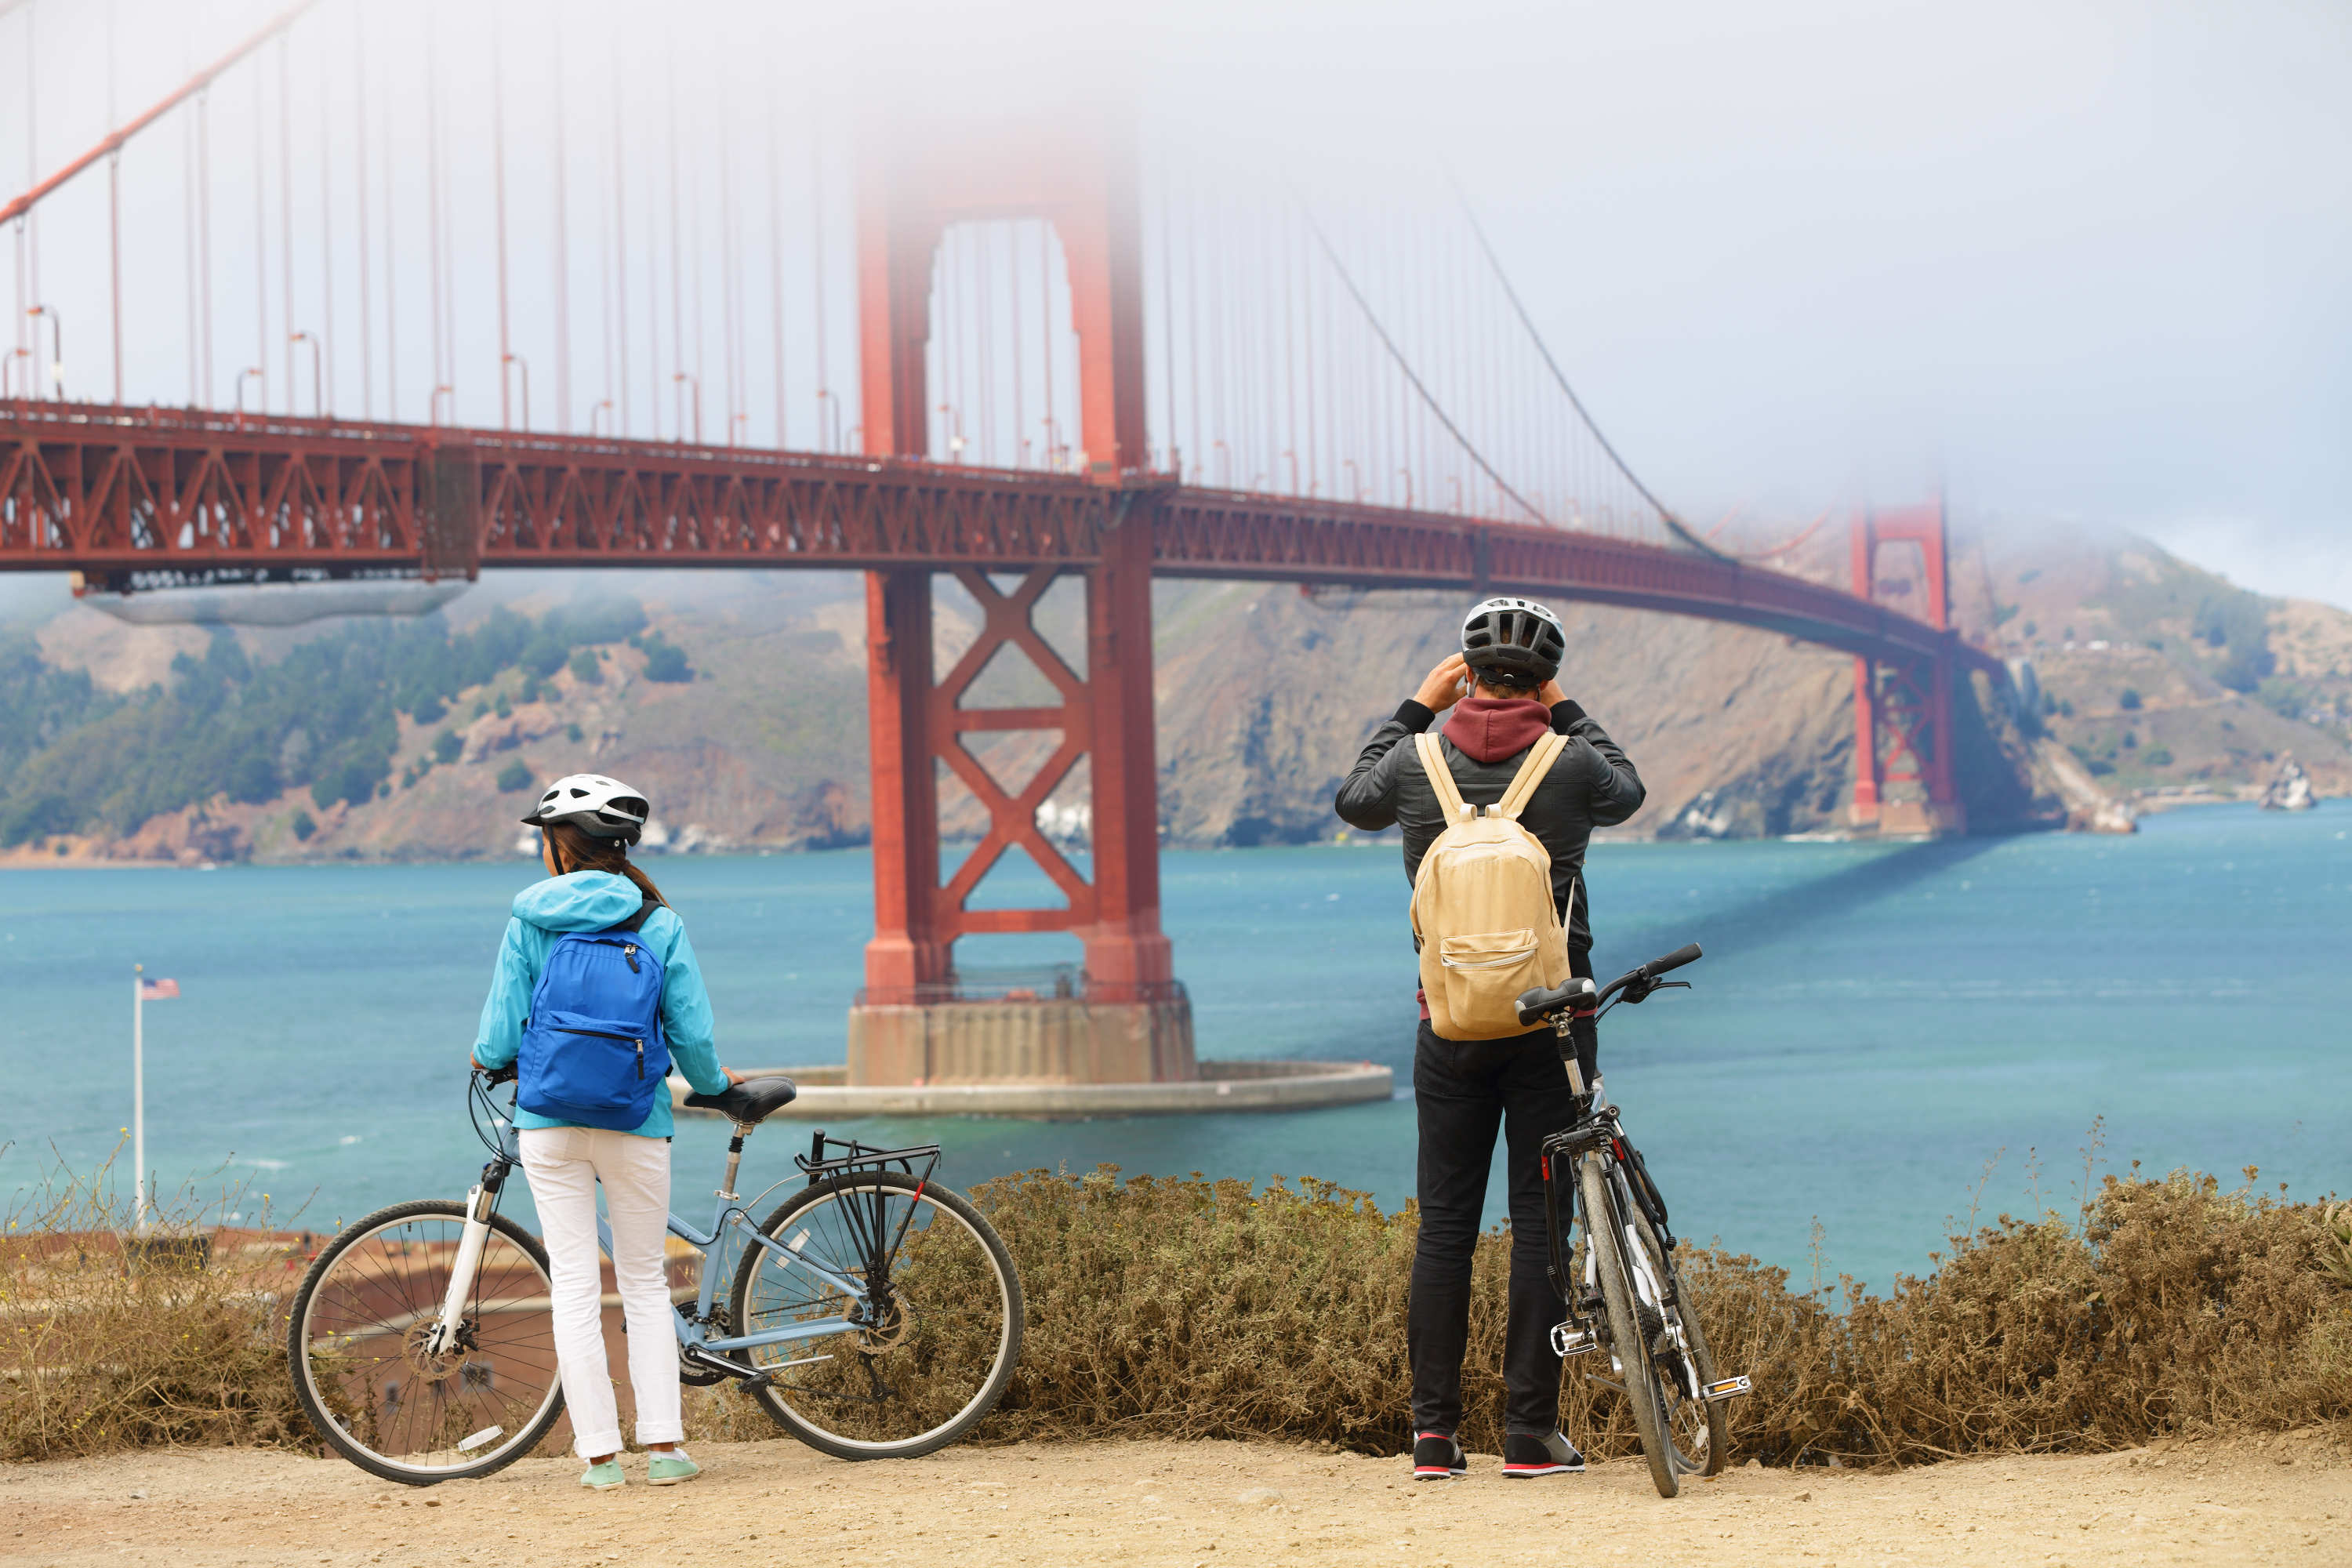 Awesome bike routes in California